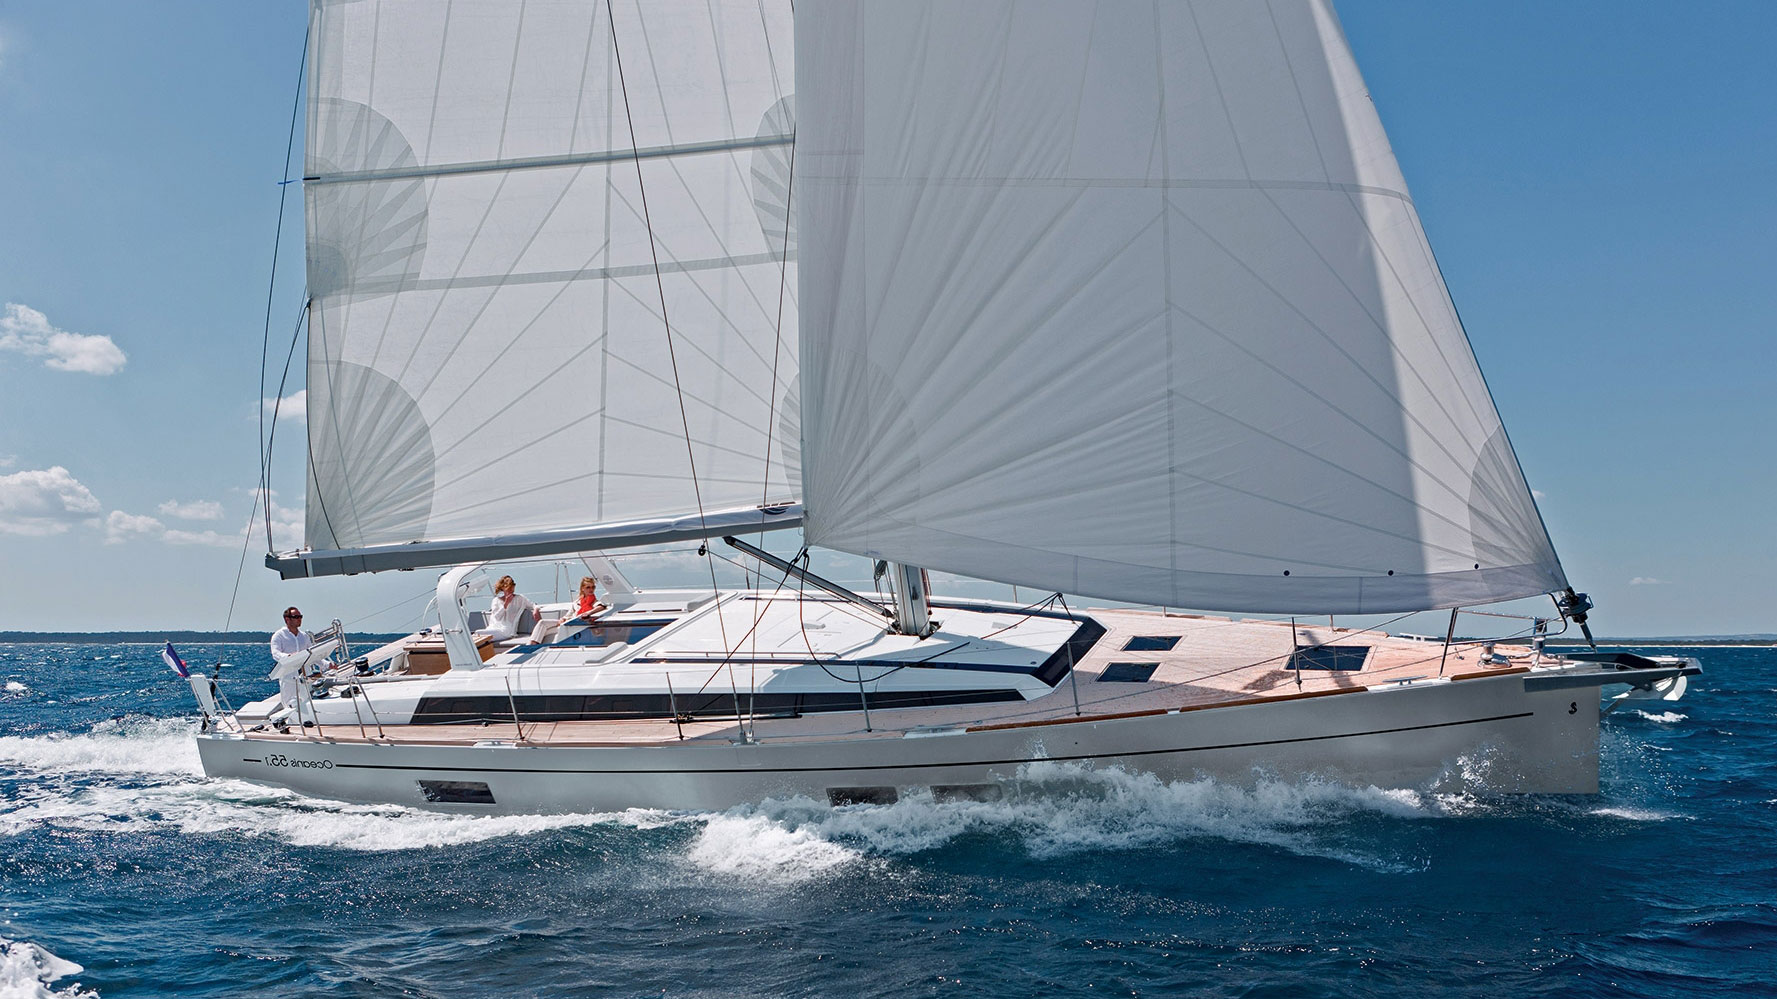 Beneteau Oceanis 62 + 55 1 Trade & Sail | Yachts For Sale